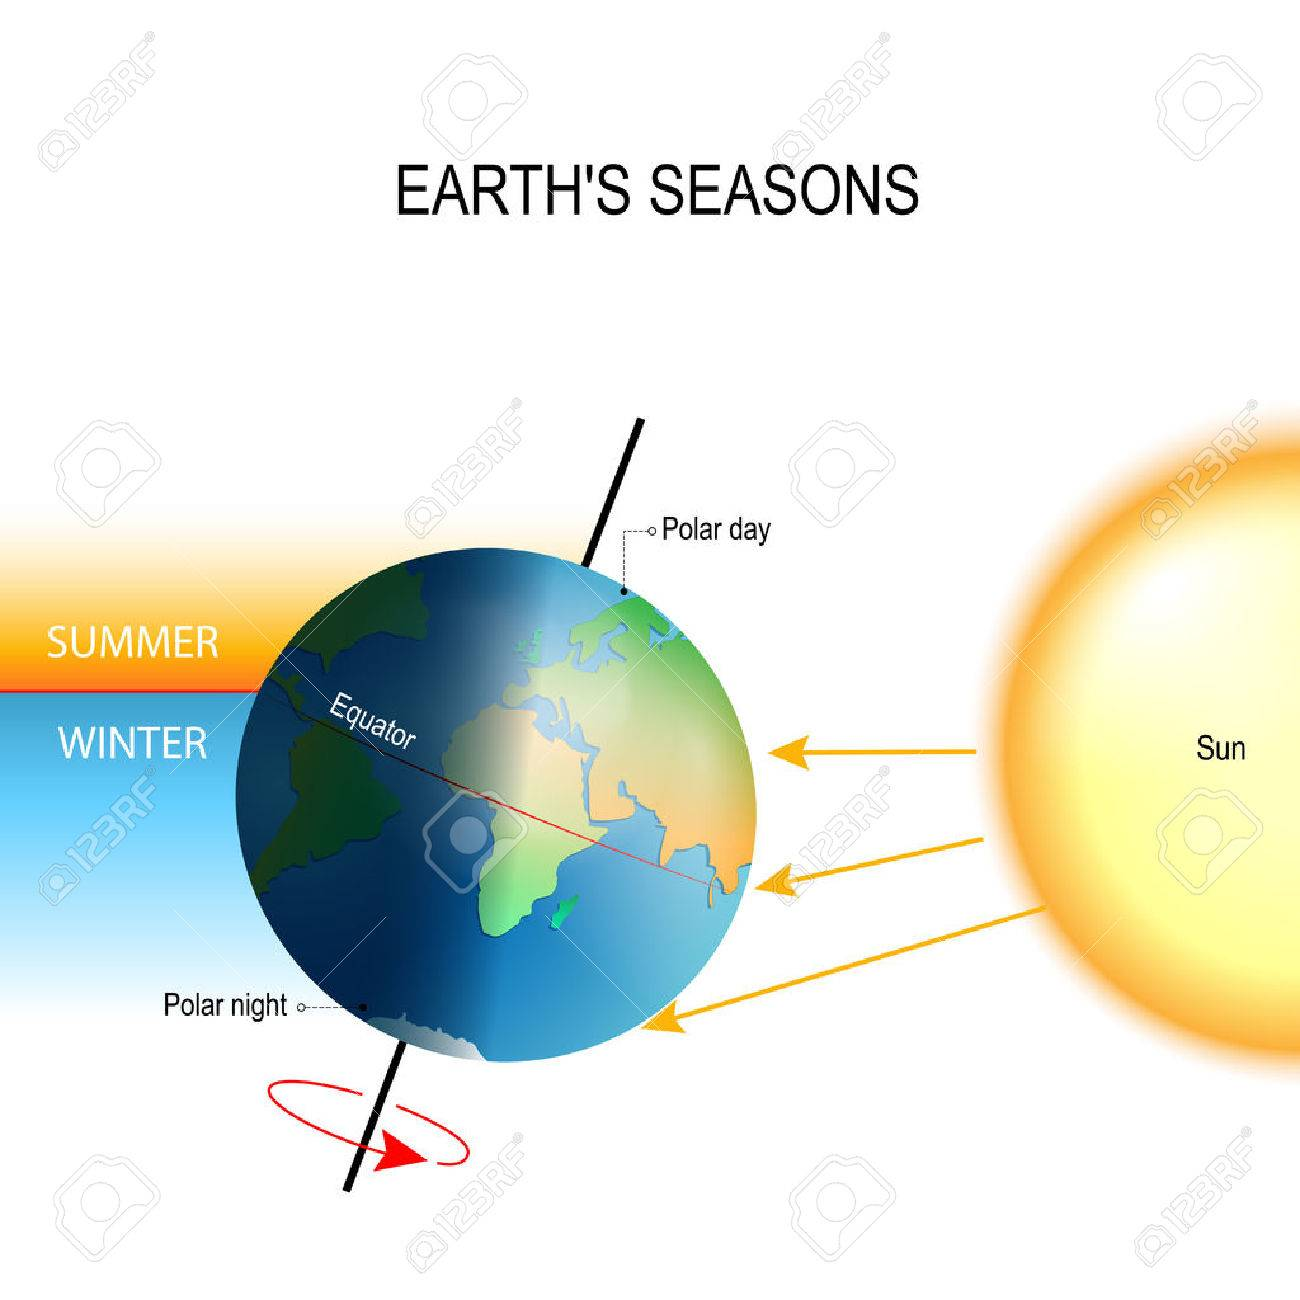 hight resolution of tilt of the earth s axis seasons is the result from the earth s axis of rotation being tilted with respect to its orbital plane the northern and southern